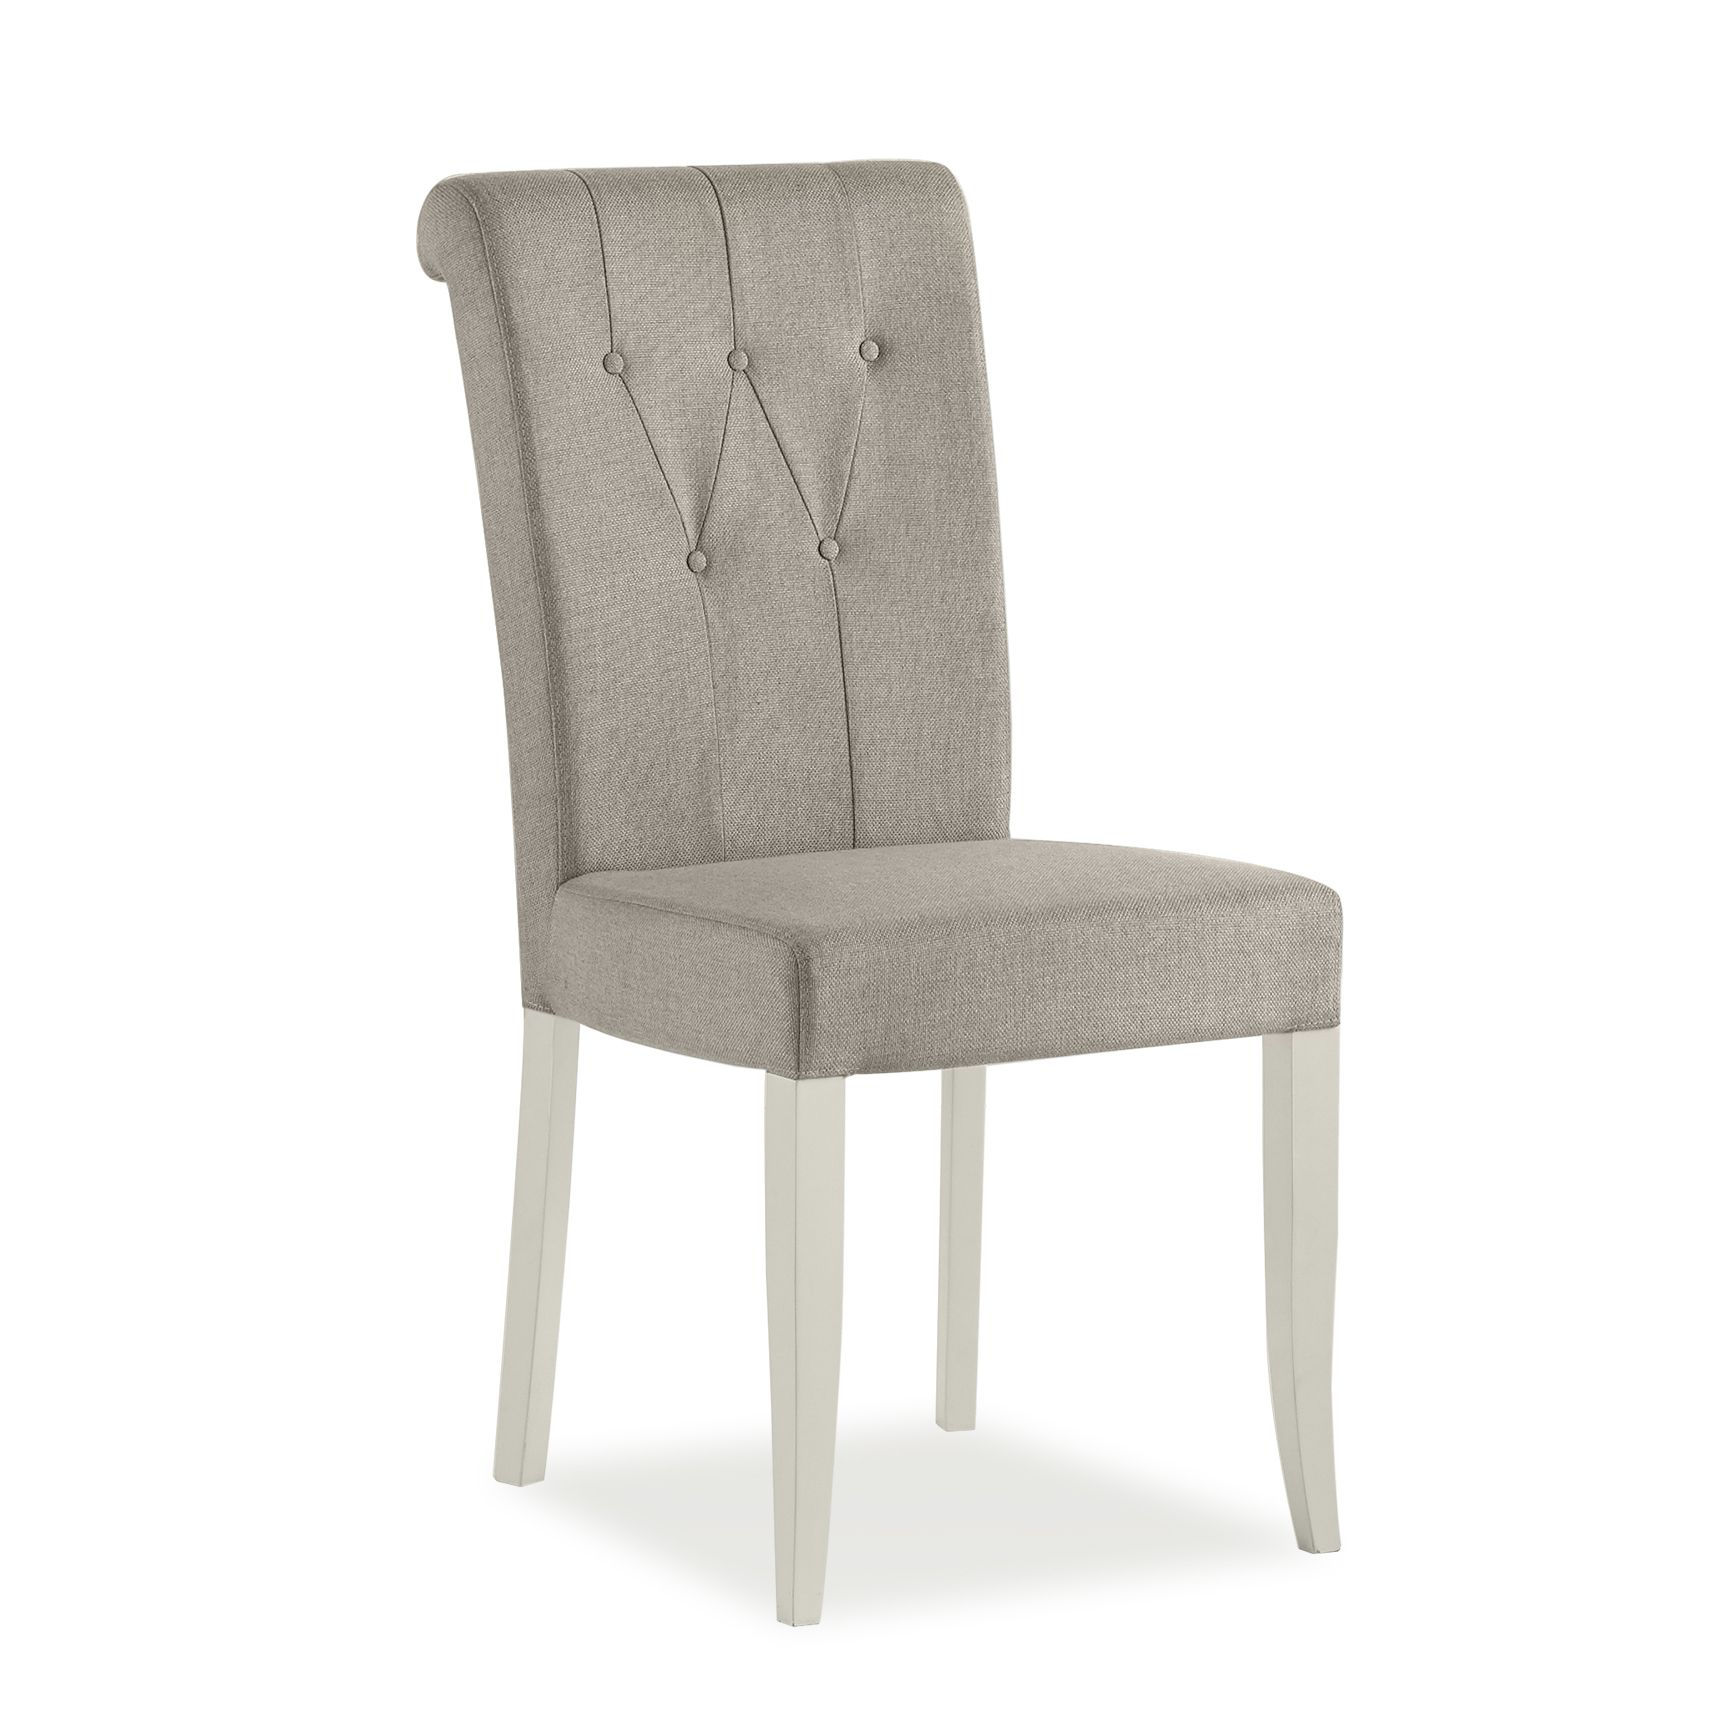 Photo of Bentley designs hampstead soft grey and pebble grey chairs pair